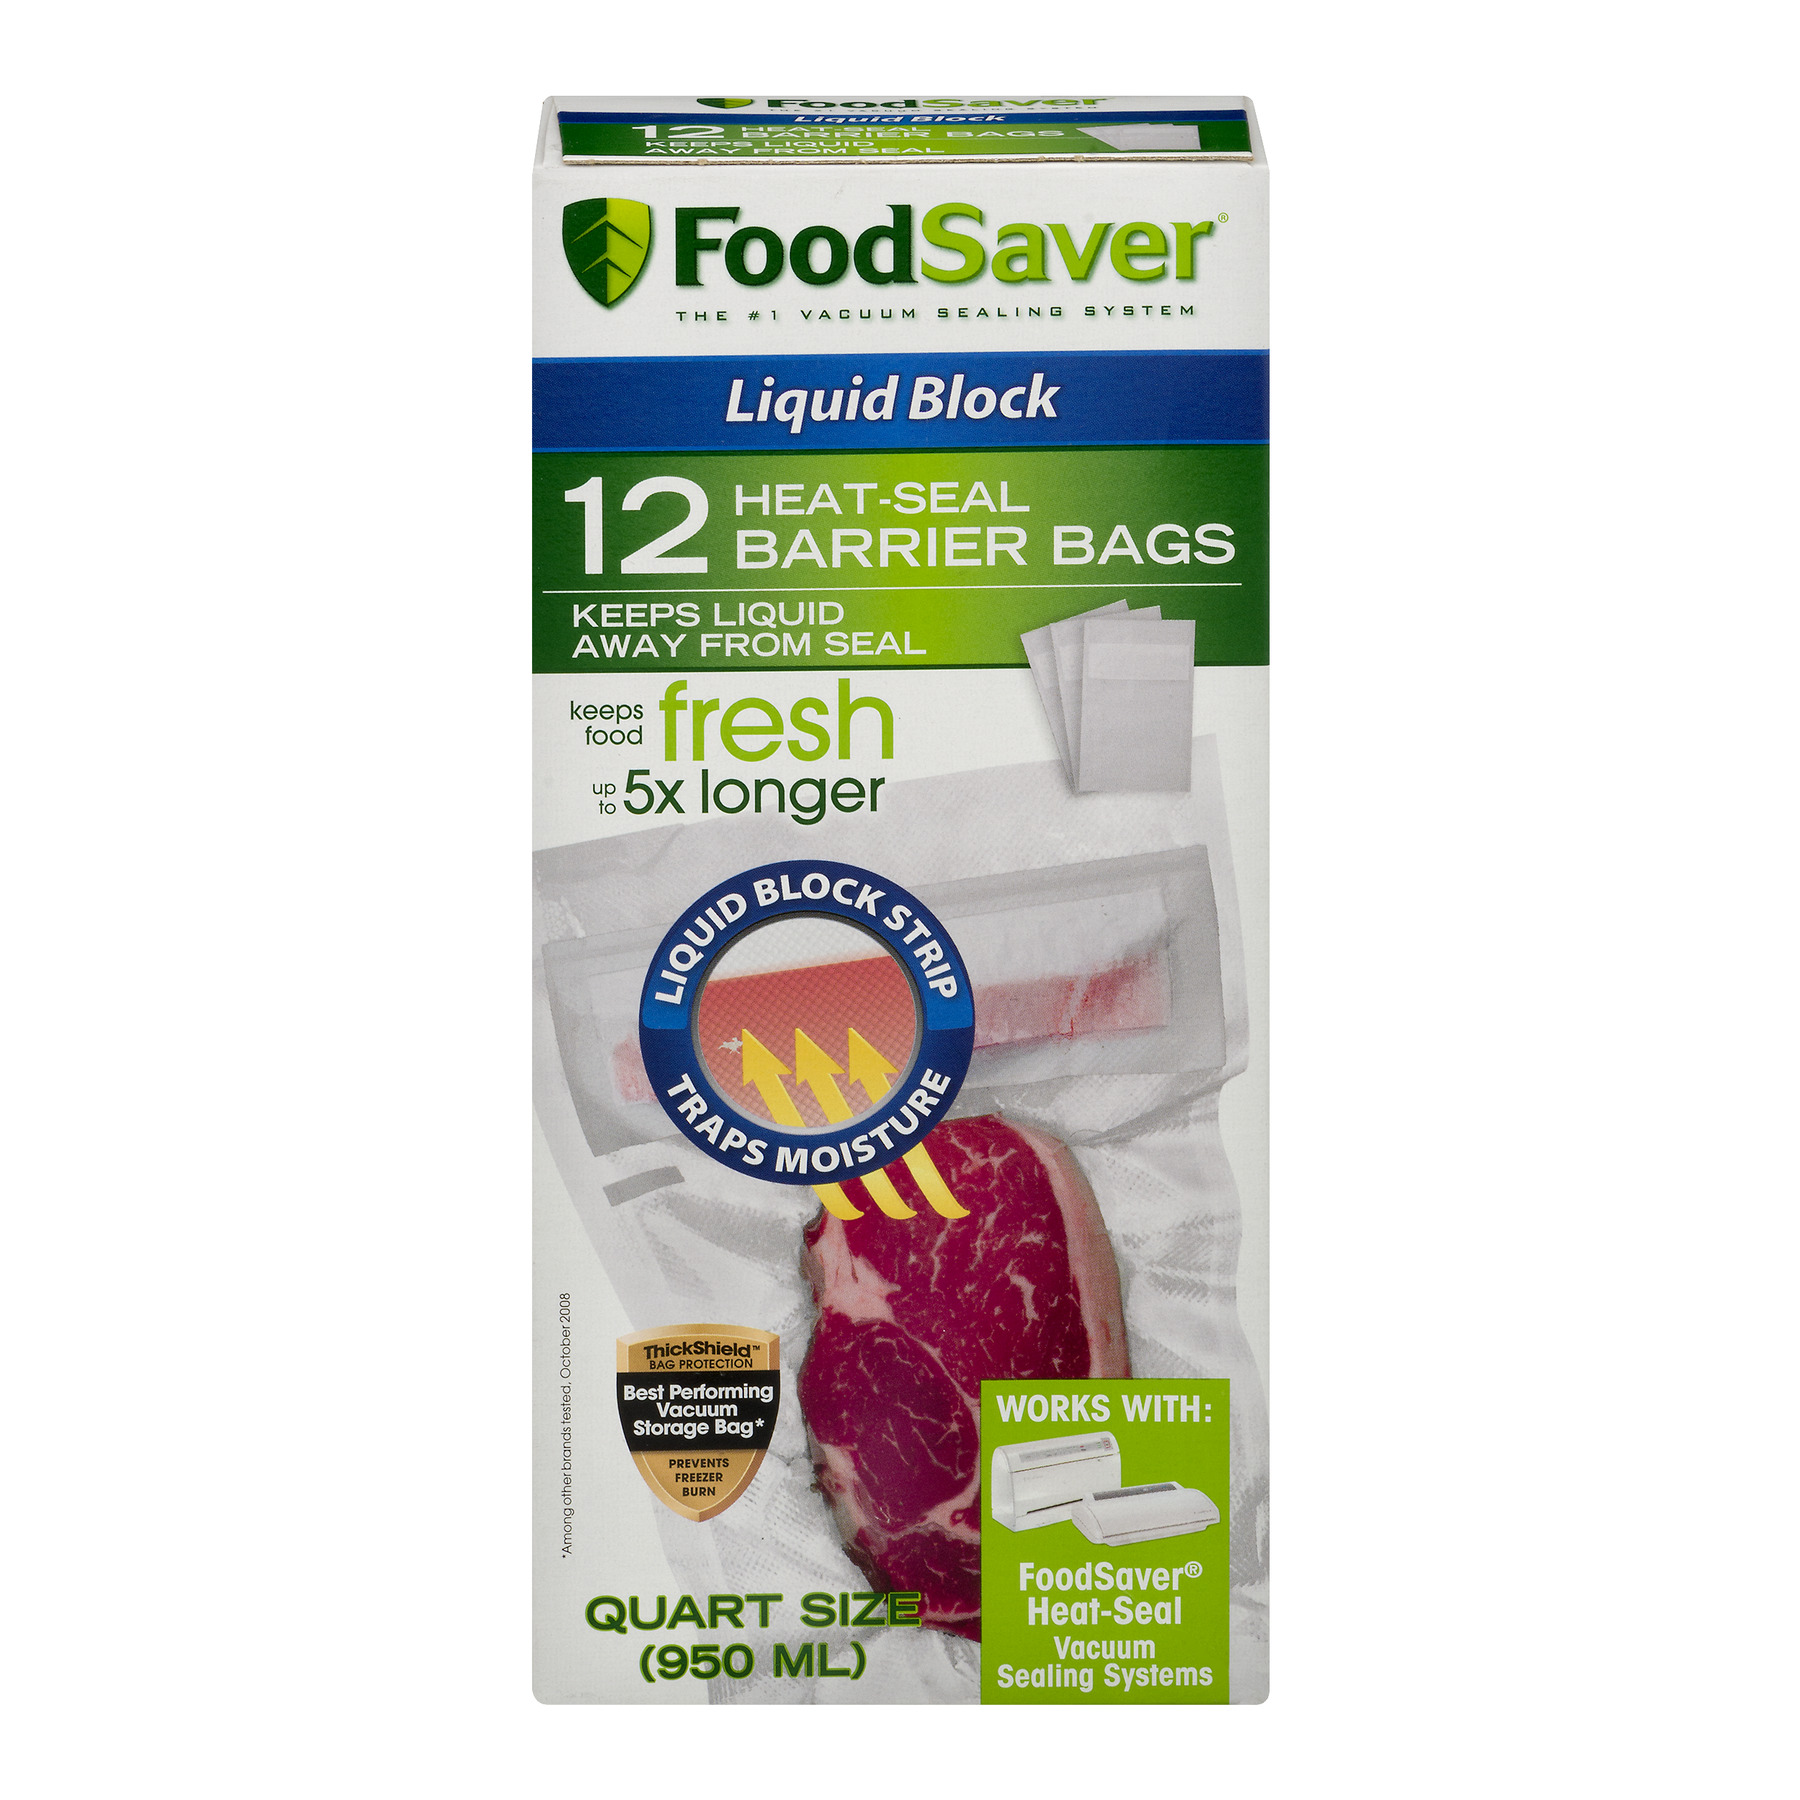 Click here to buy Food Saver Liquid Block Heat-Seal Barrier Bags Quart 12 CT by Jarden Home Brands.